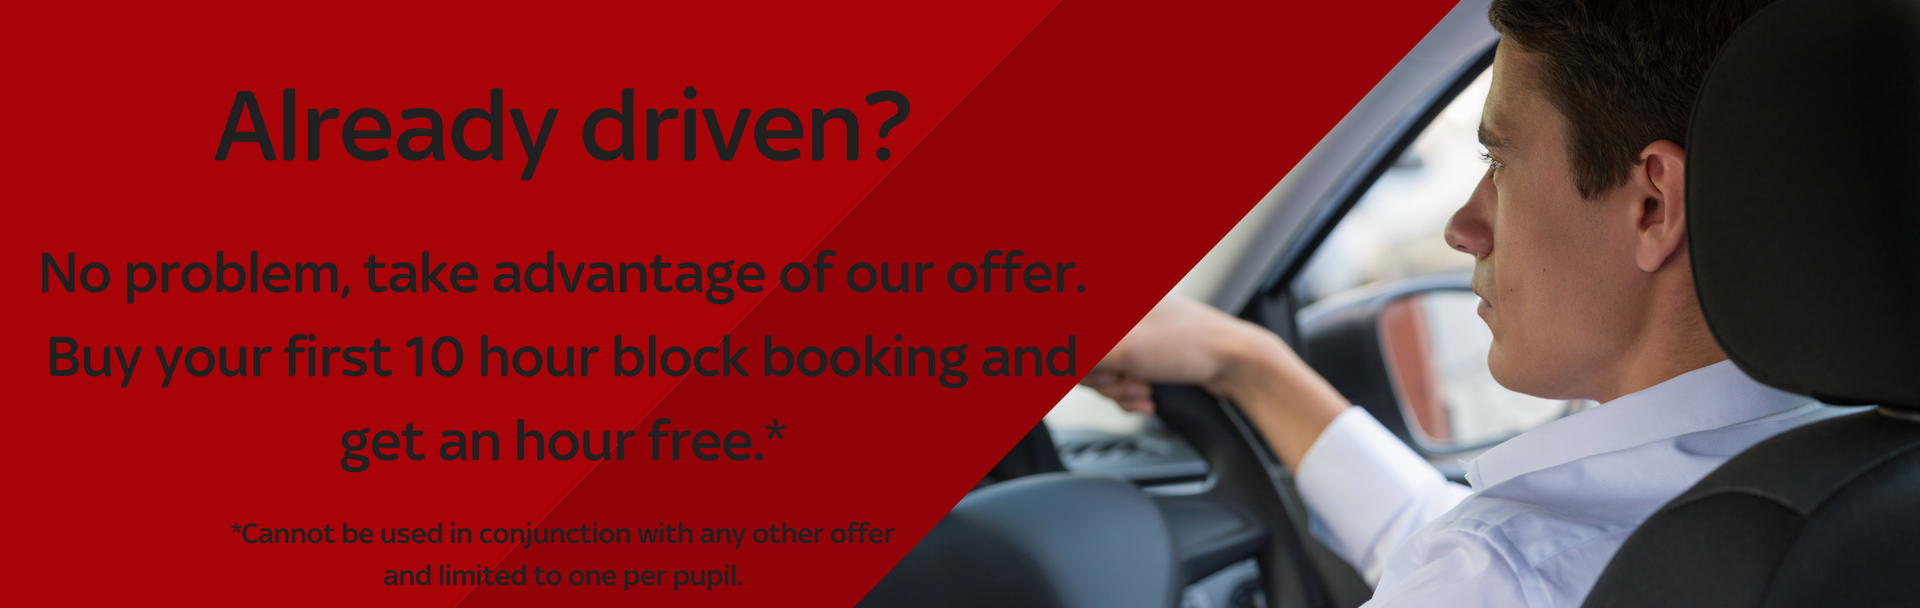 existing driver offer